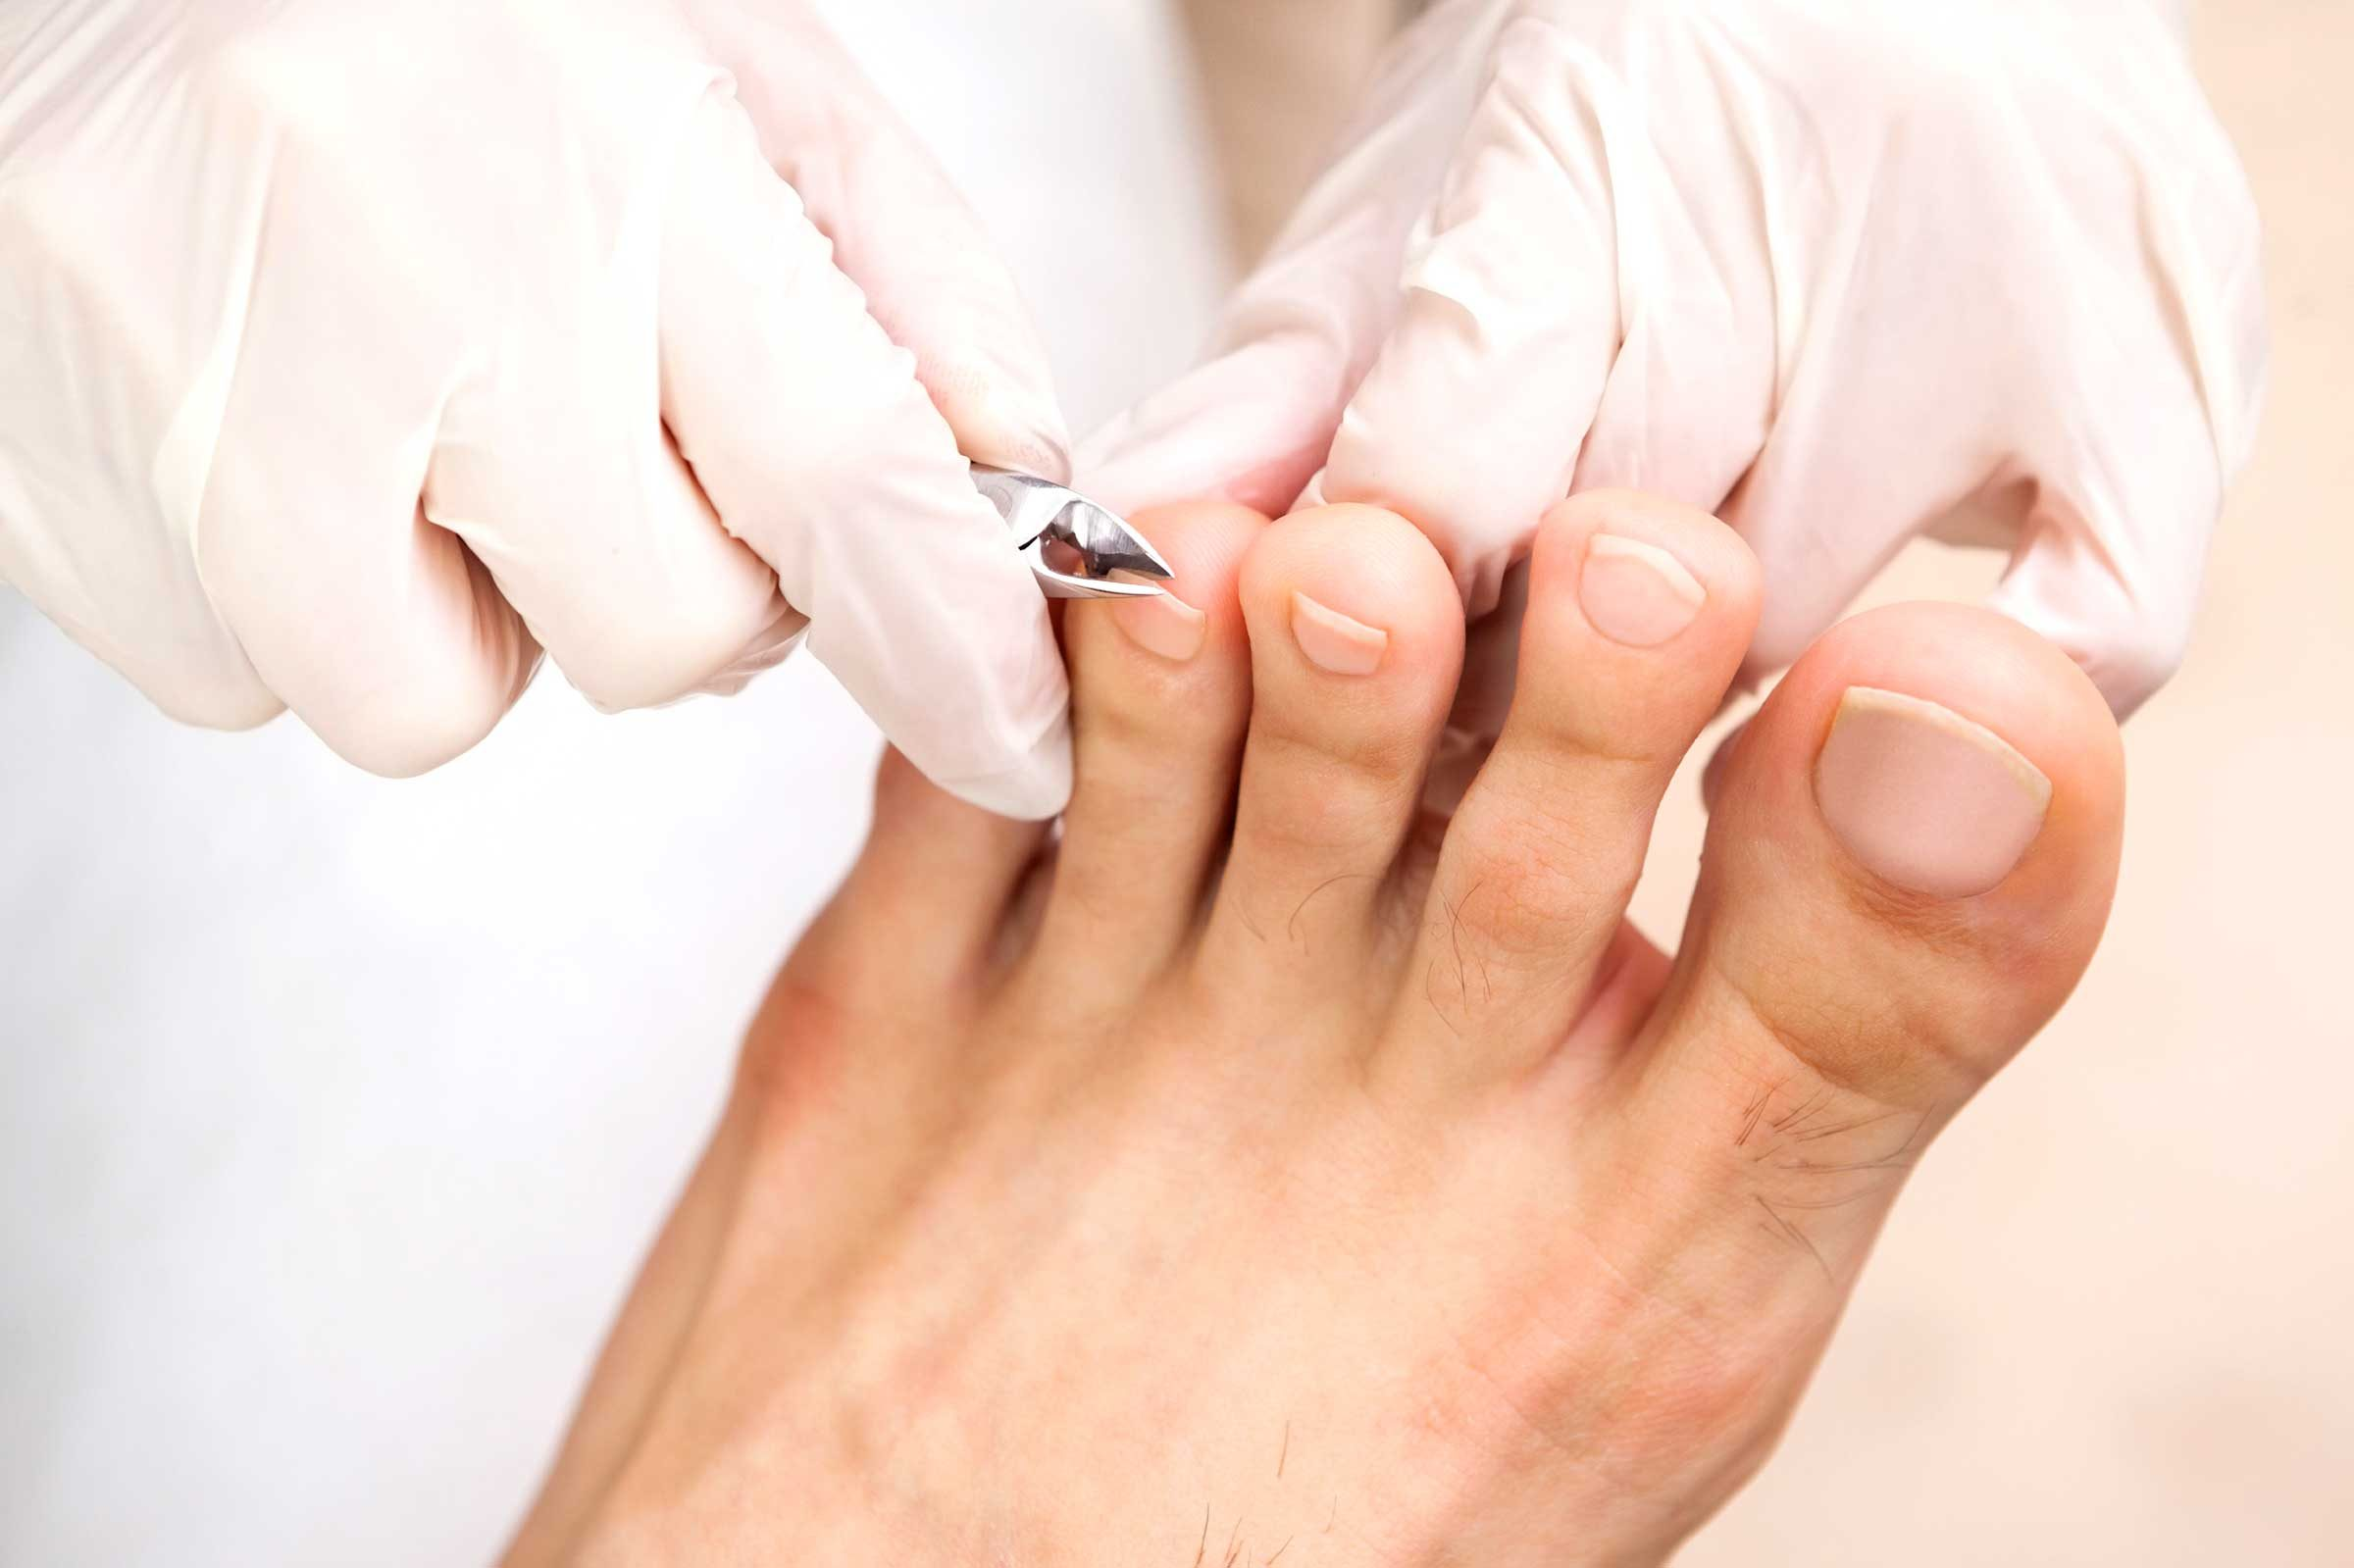 Ask Your Podiatrist To Trim Toenails At Next Visit